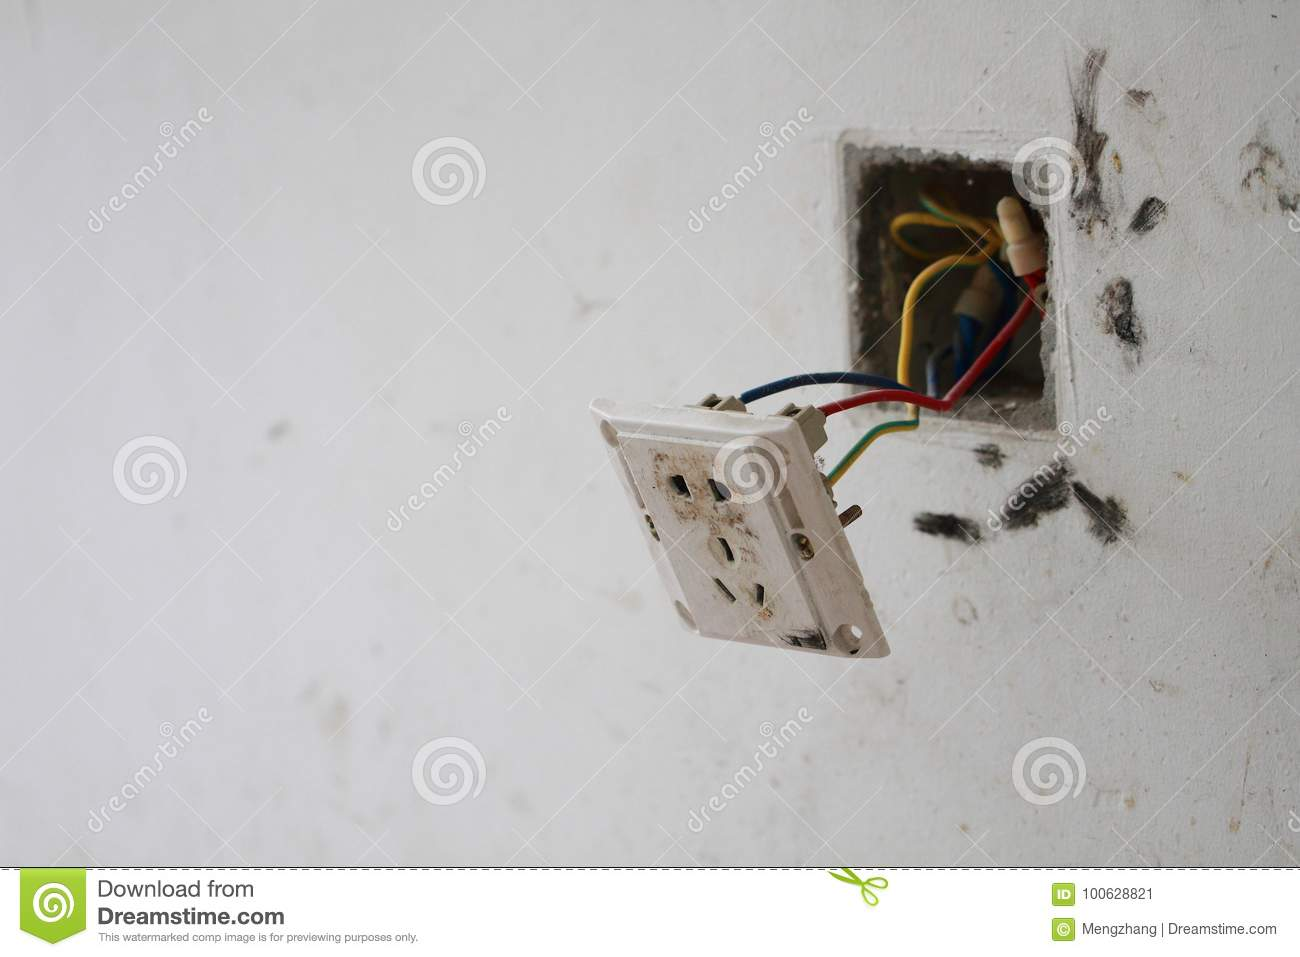 Renovation Light Switch Stock Image Of Home 100628821 Electrical Wiring Download